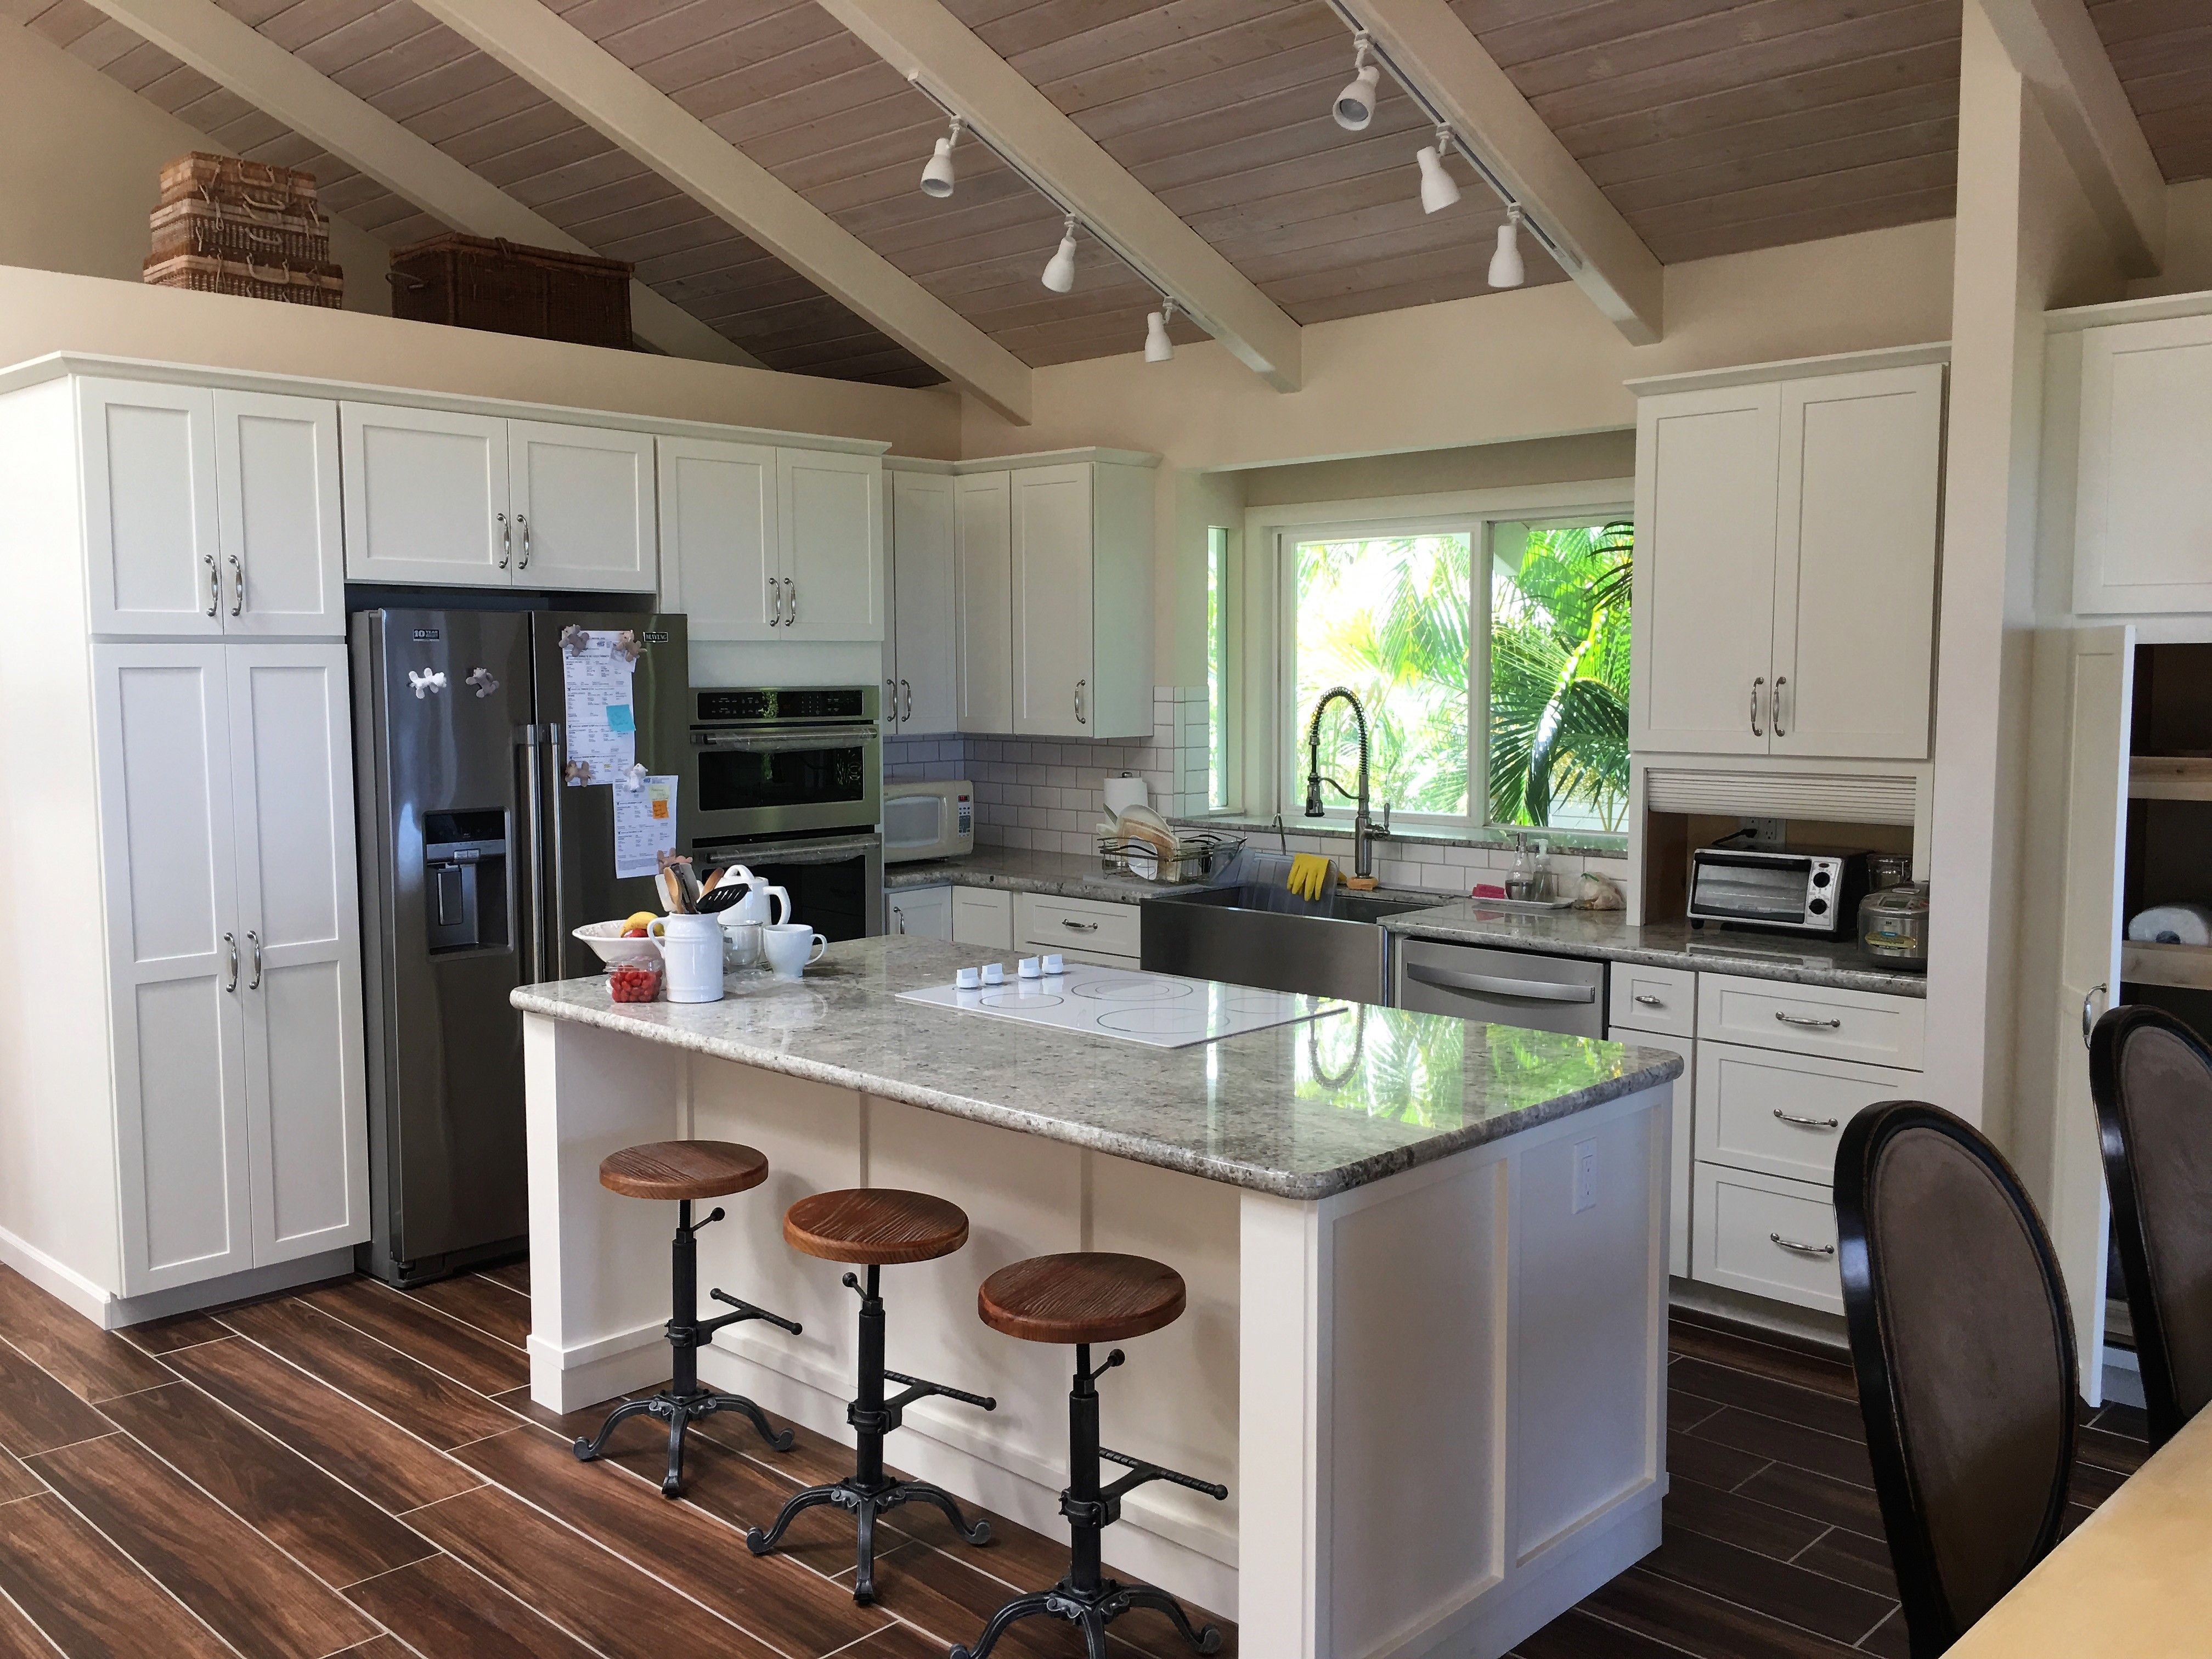 White Hawaii Kitchen Remodel Kitchen Cabinet Remodel Installing Cabinets Real Kitchen